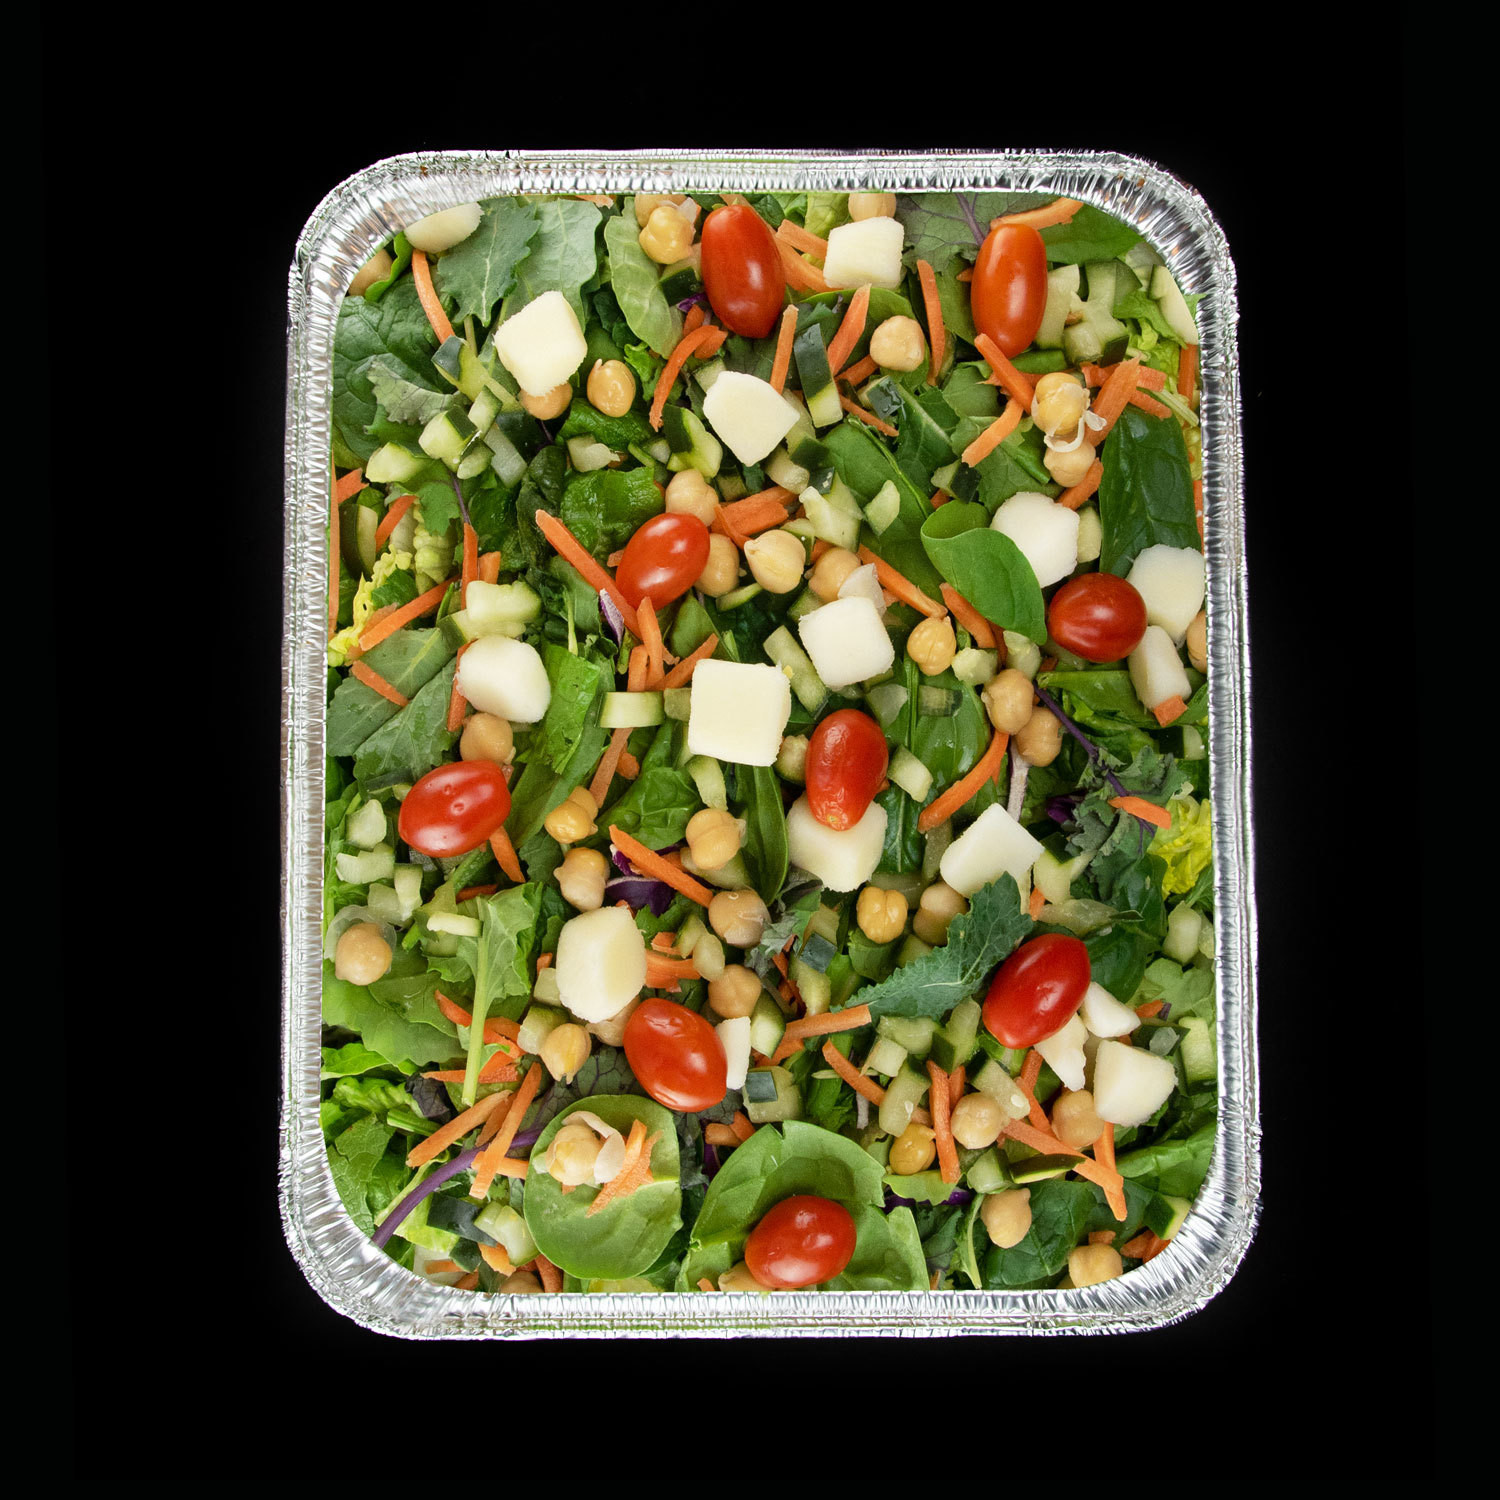 Palm Beach Salad Pan